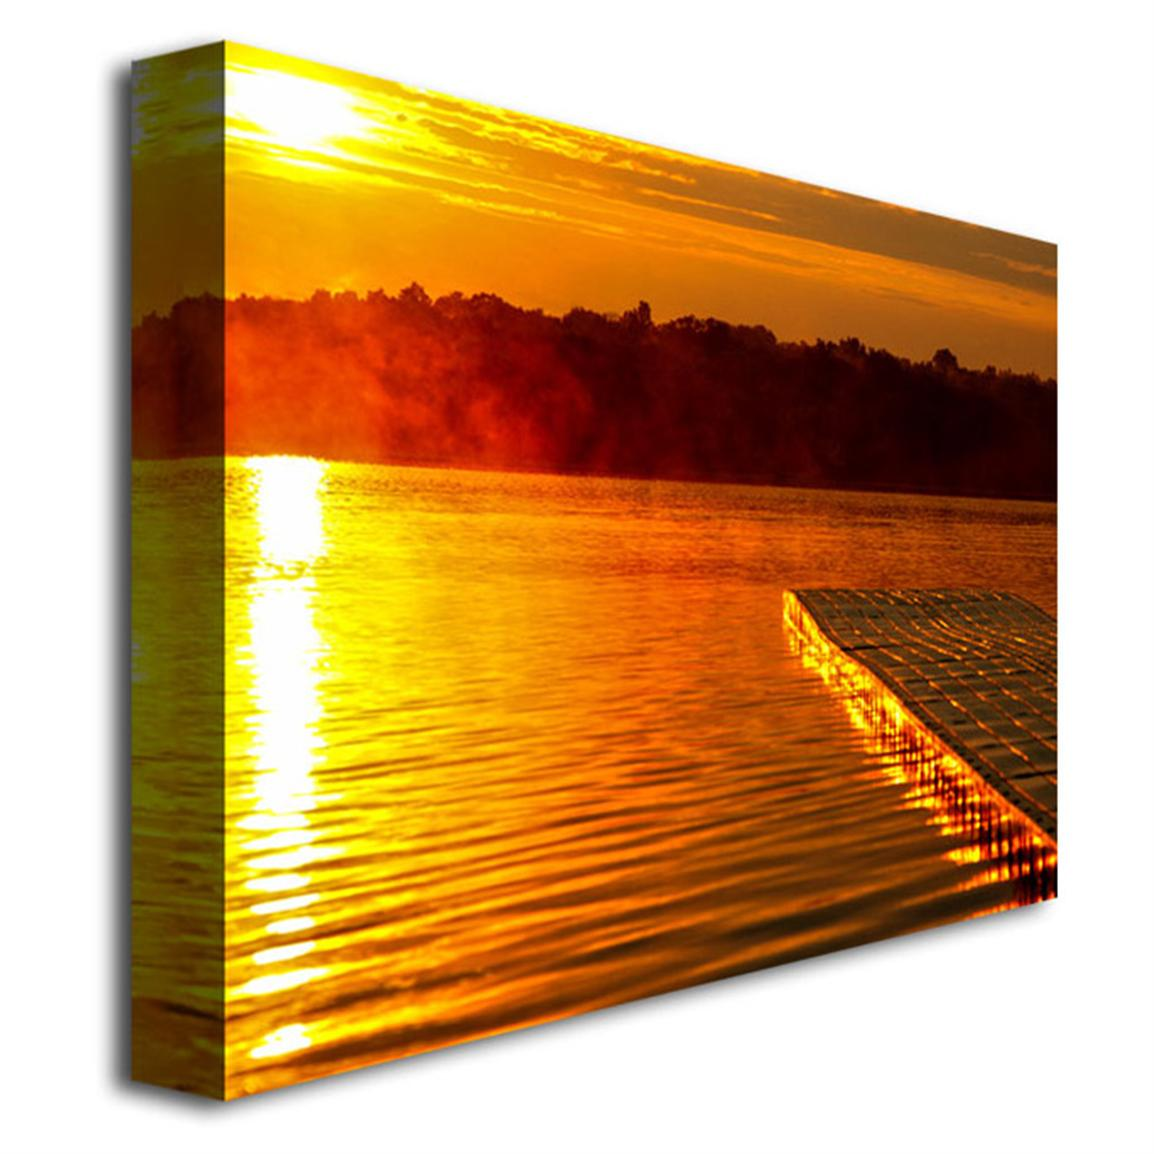 UV-coated water-resistant canvas, wood frame